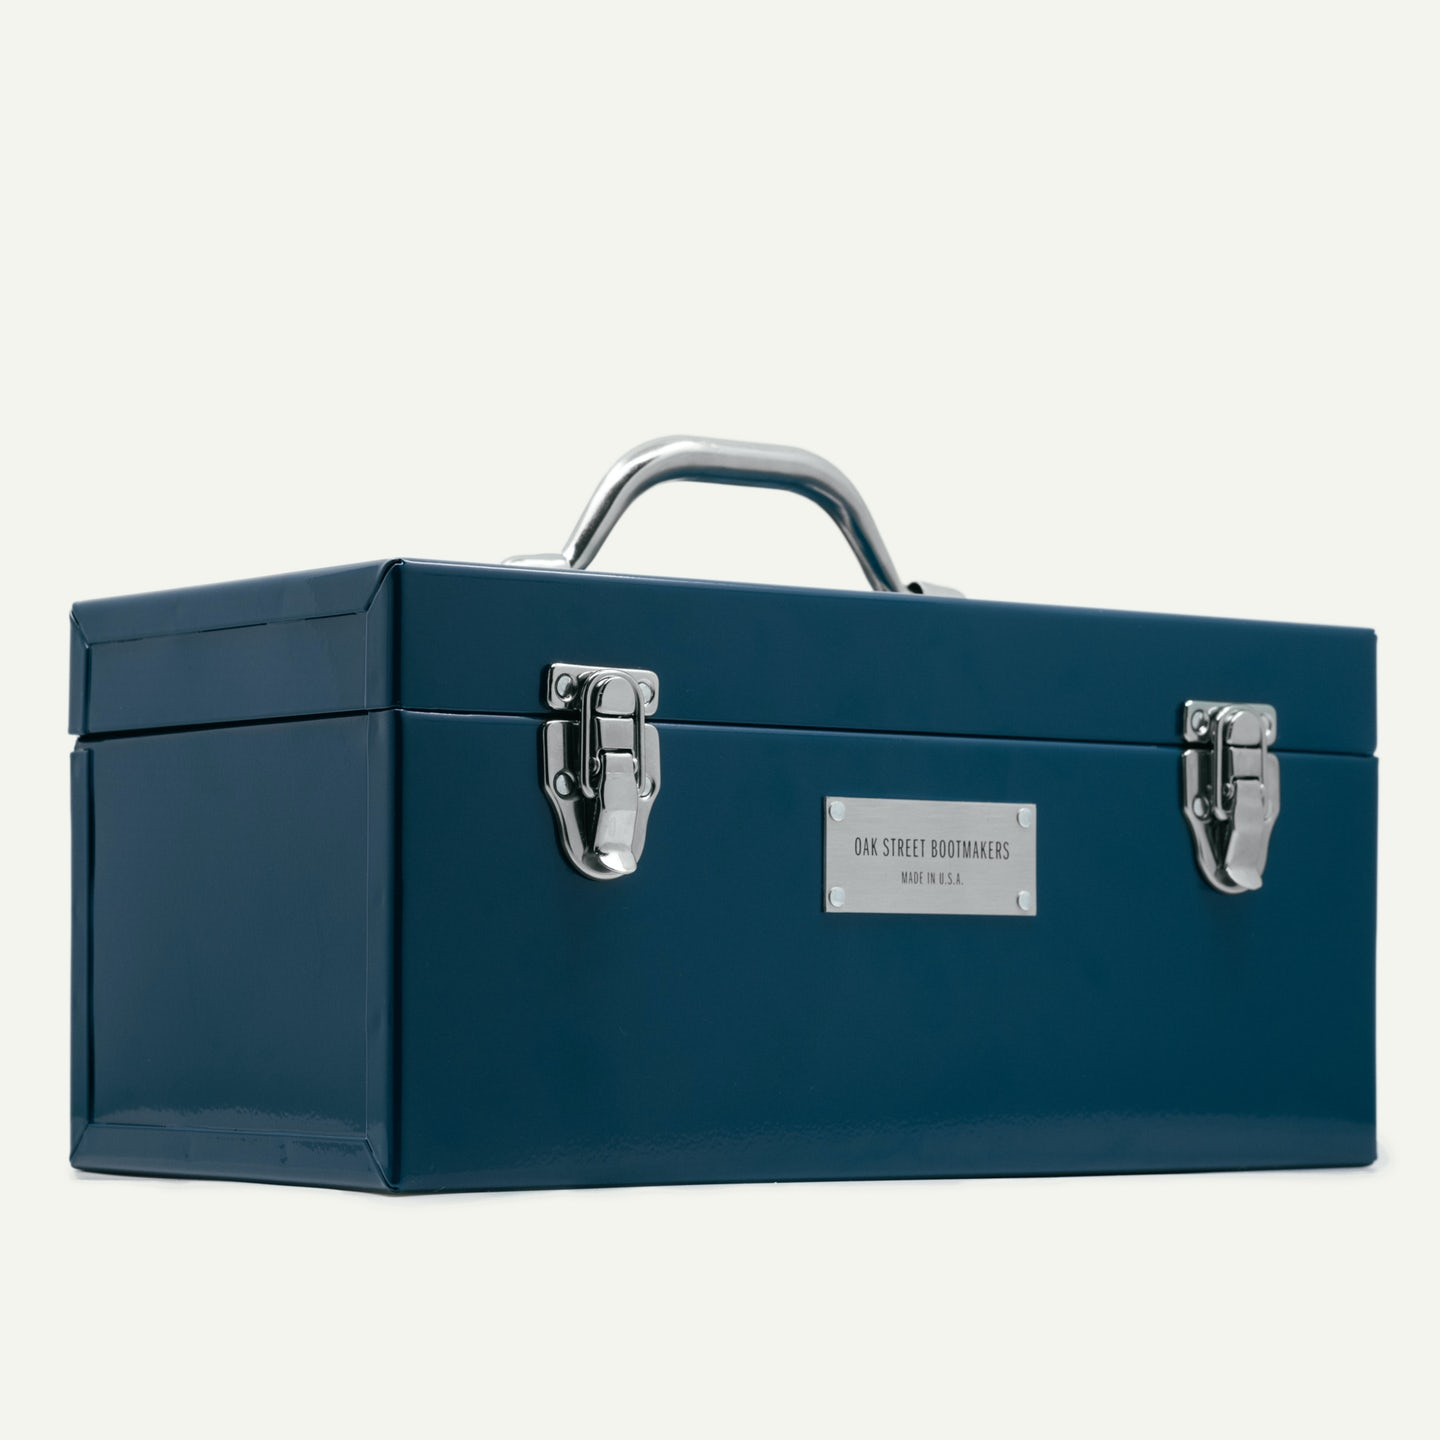 1950 Cobbler's Toolbox - Aegean Blue Cold Rolled Steel - Made in U.S.A. by Oak Street Bootmakers - View 2